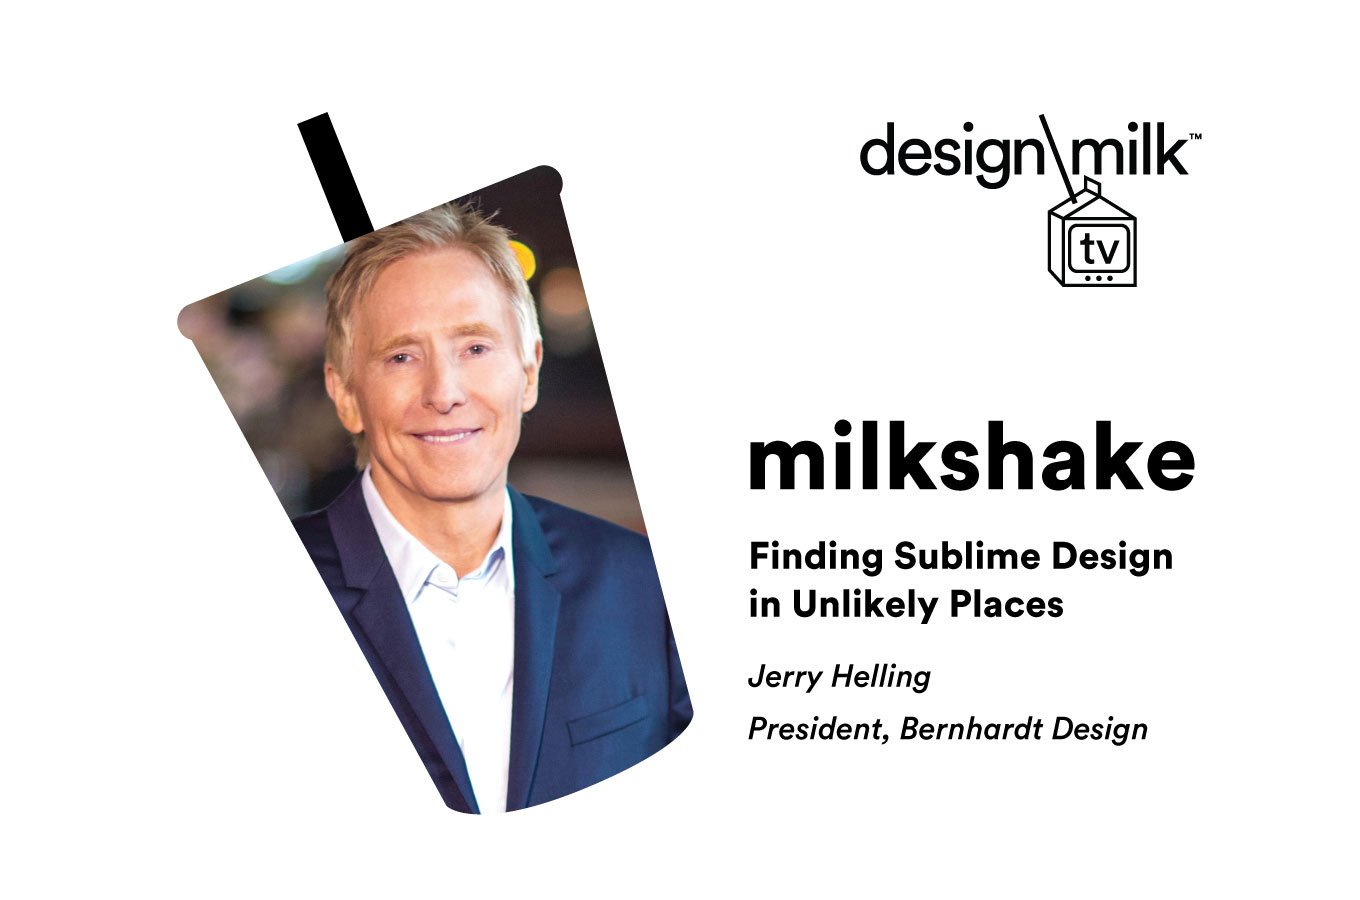 DMTV Milkshake: Jerry Helling Finds Sublime Design in Unlikely Places